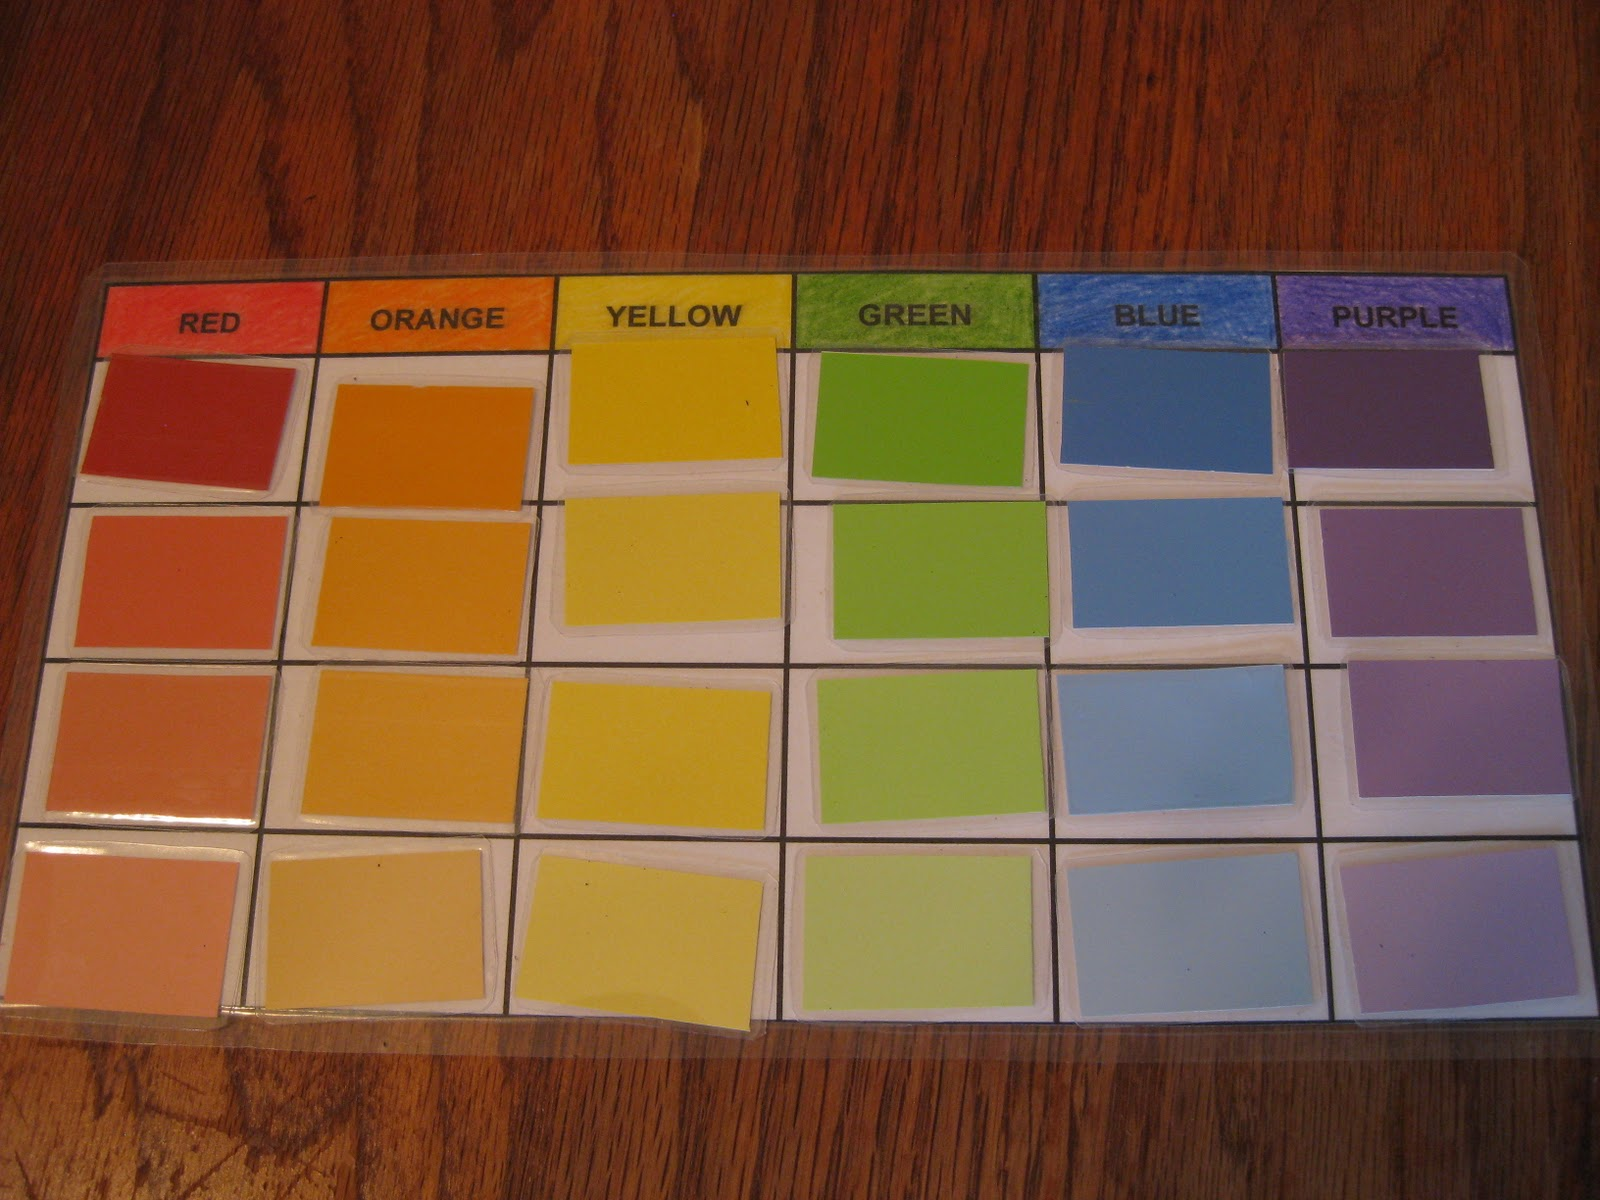 Lilliput Station Color Sorting With Paint Sample Cards